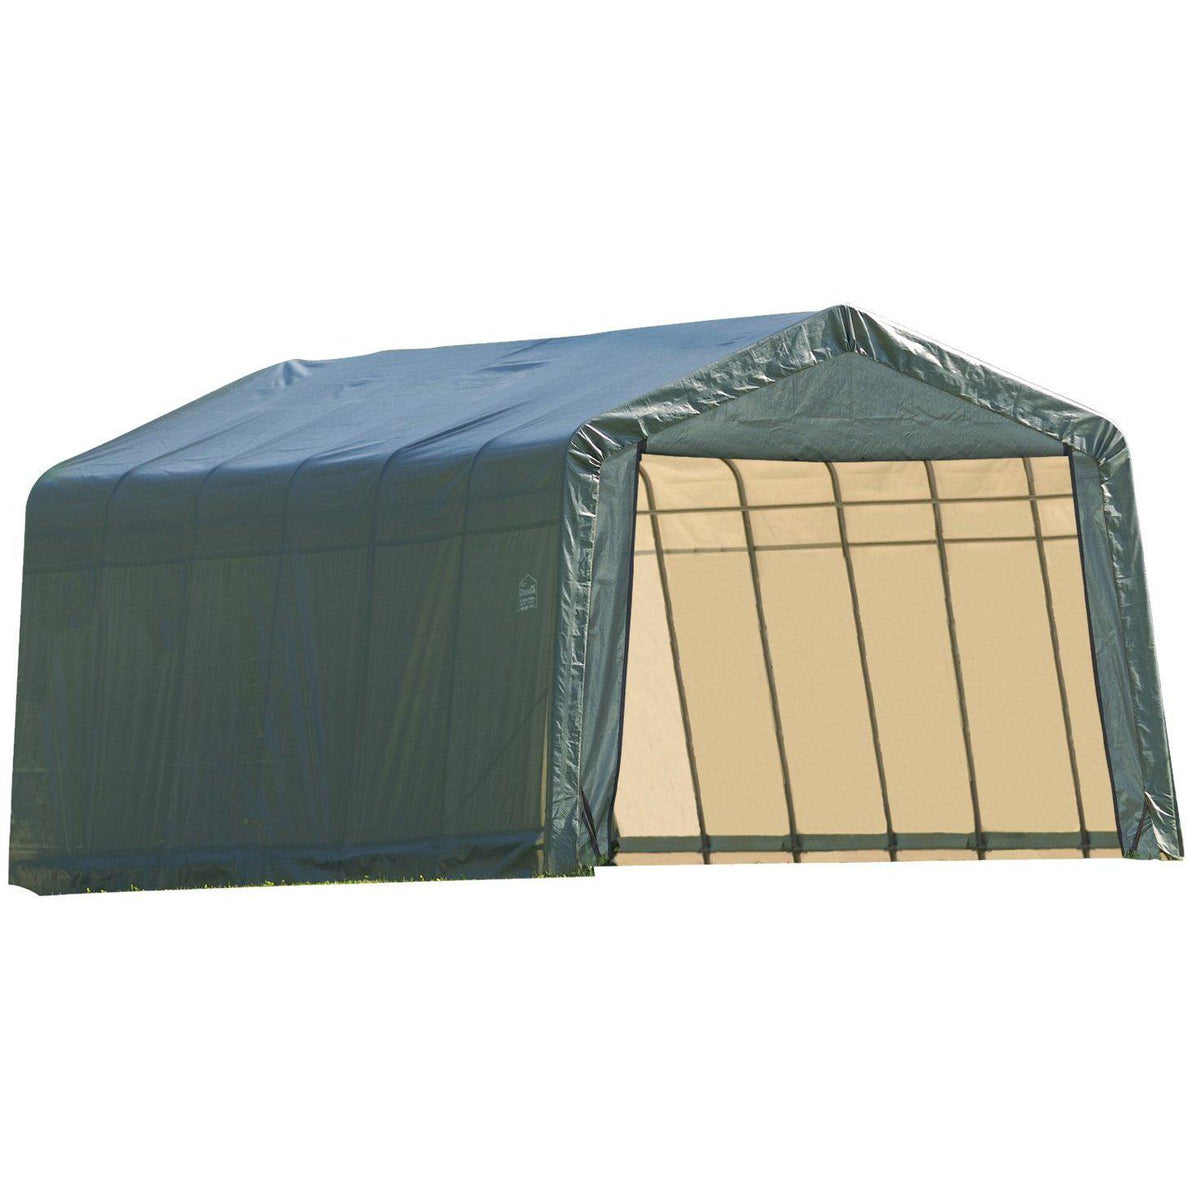 ShelterLogic 76442 Green 12'x28'x8' Peak Style Shelter